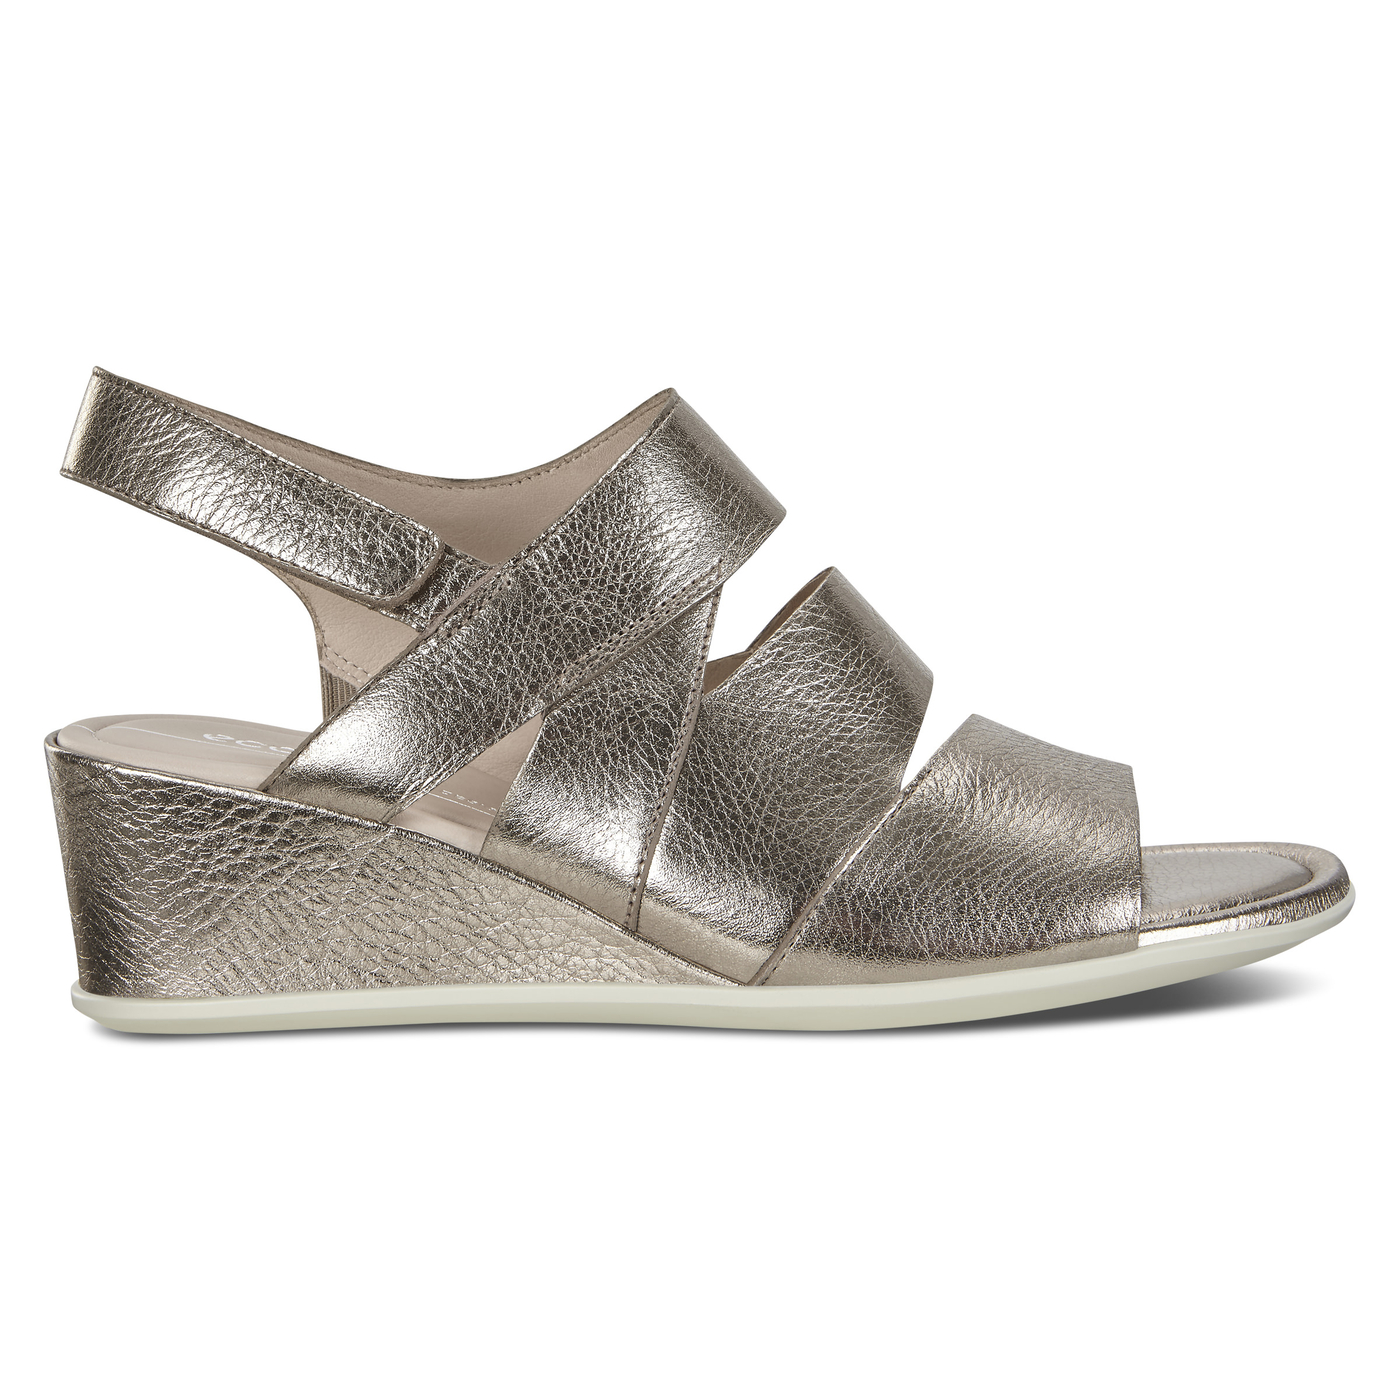 ECCO SHAPE 35 WEDGE SANDAL Heel